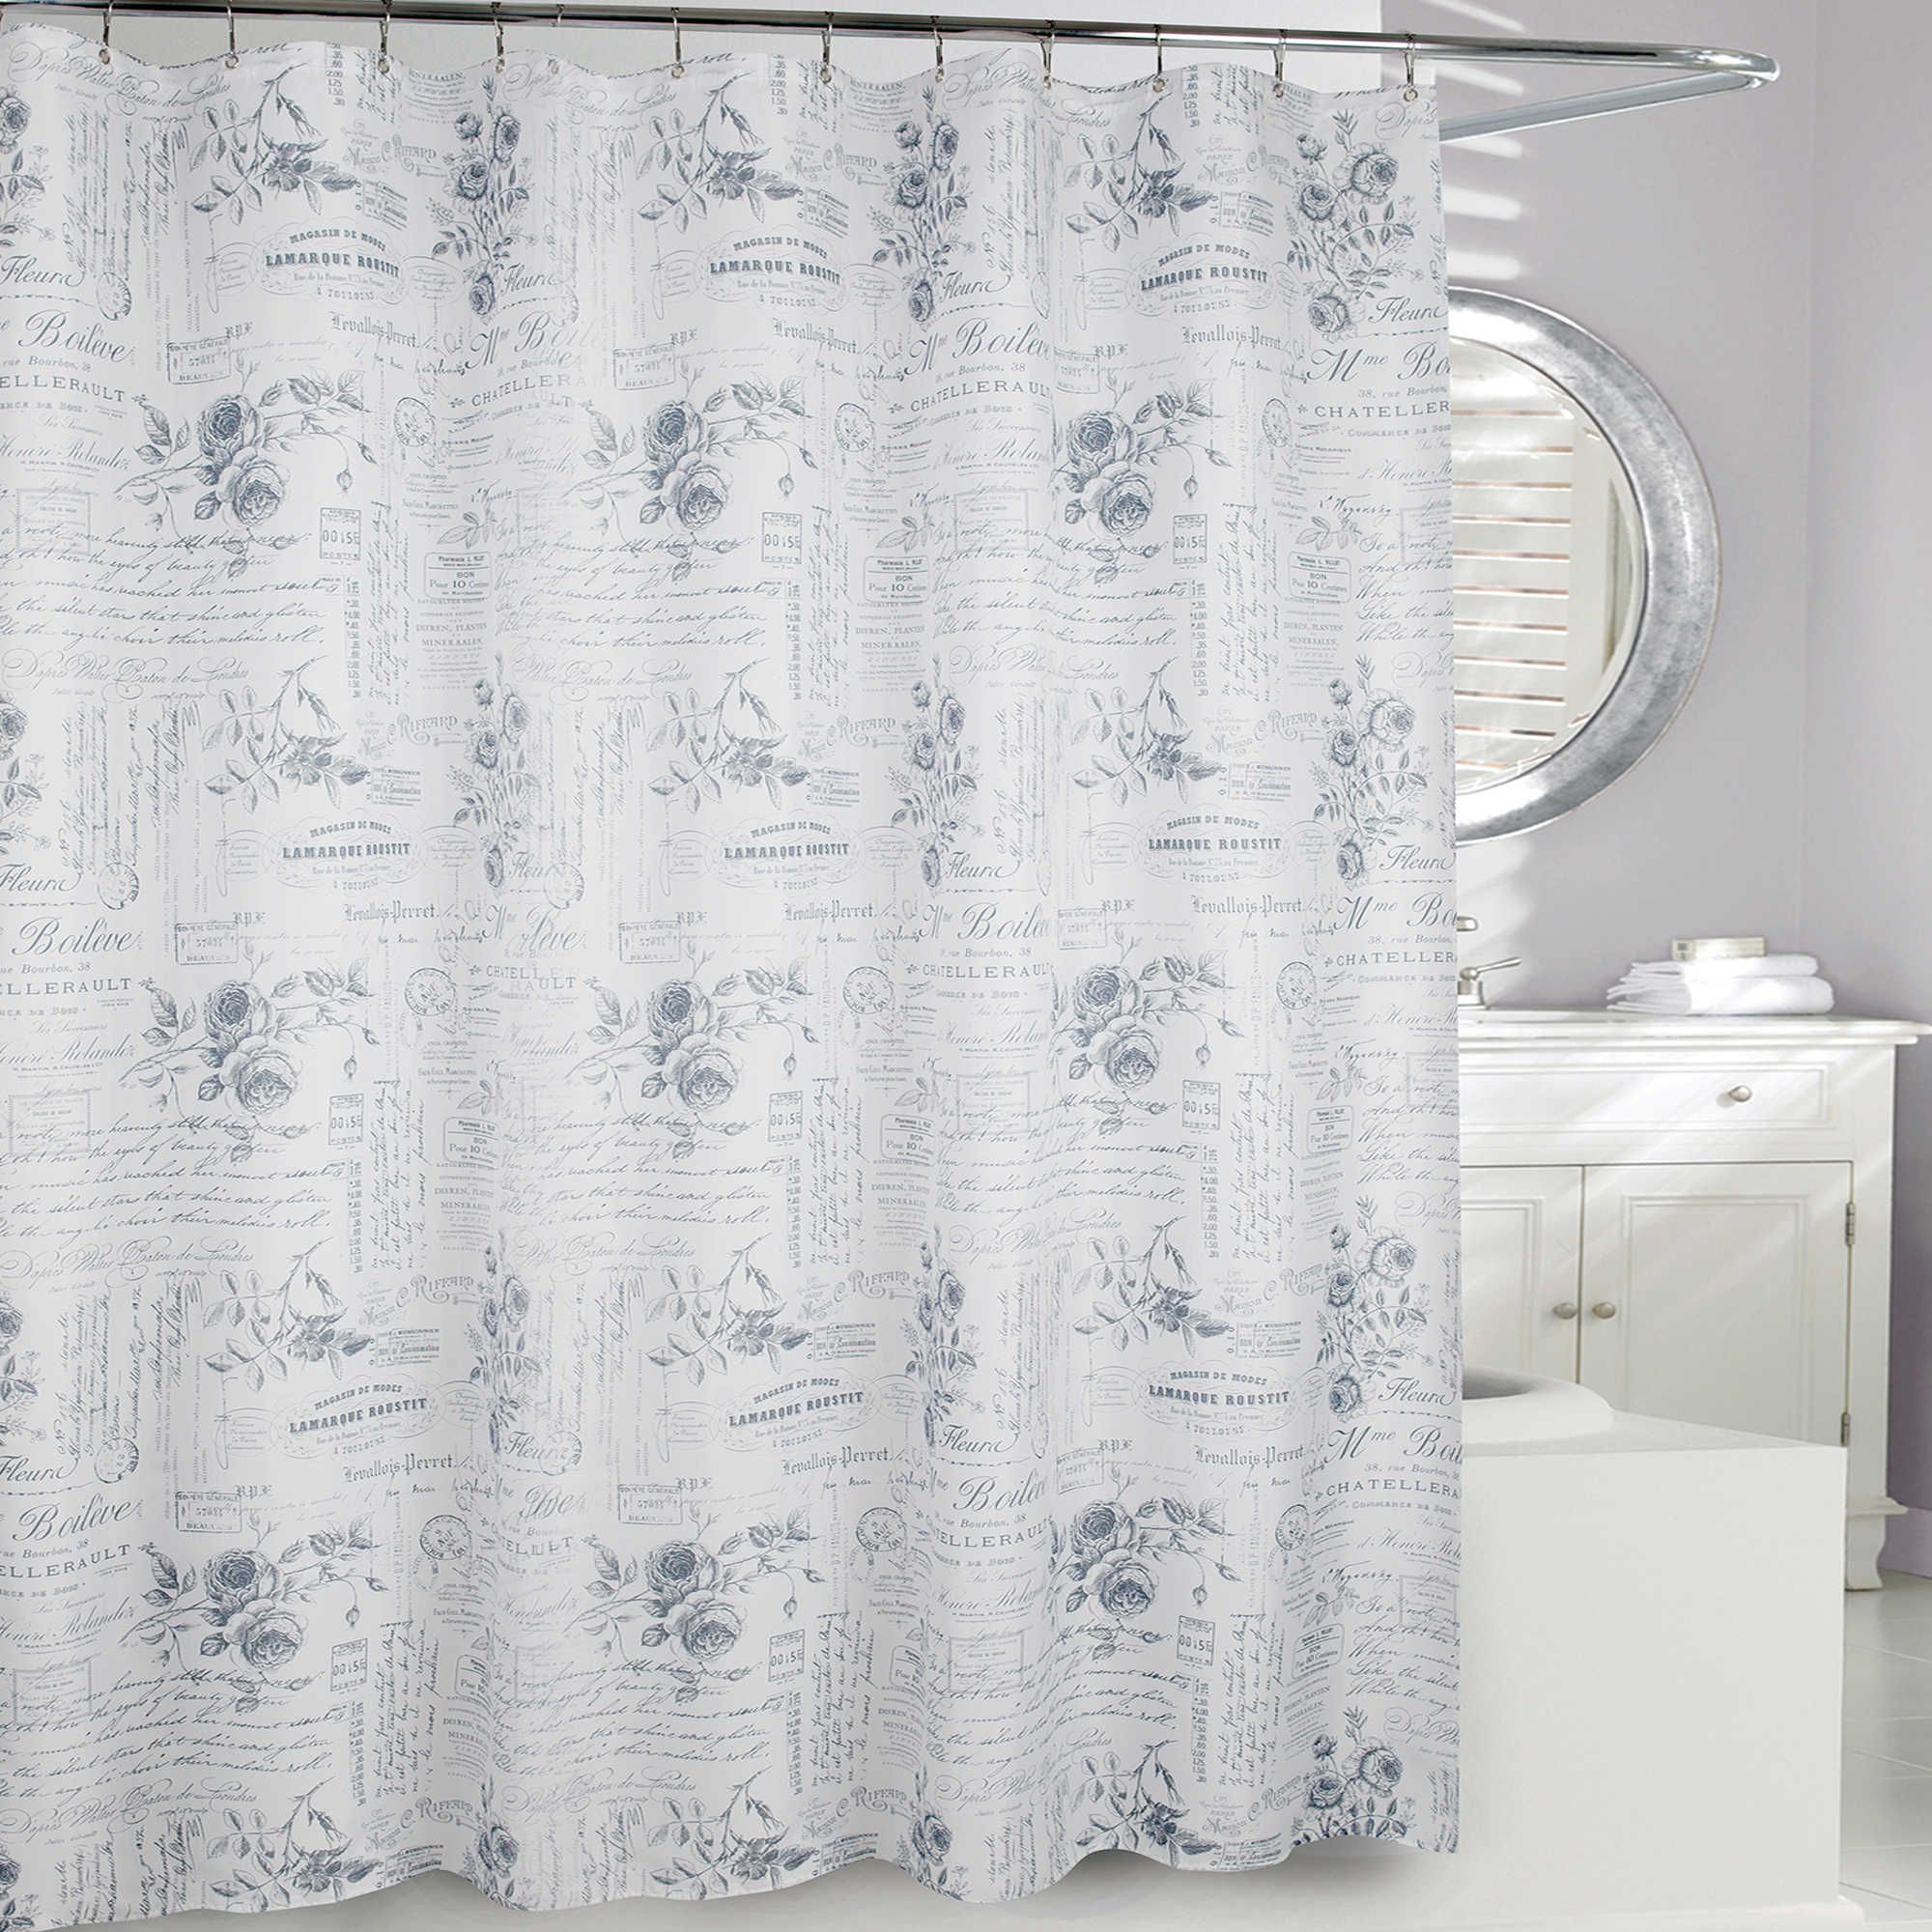 Moda at Home Enchanted Fabric Shower Curtain in Grey www